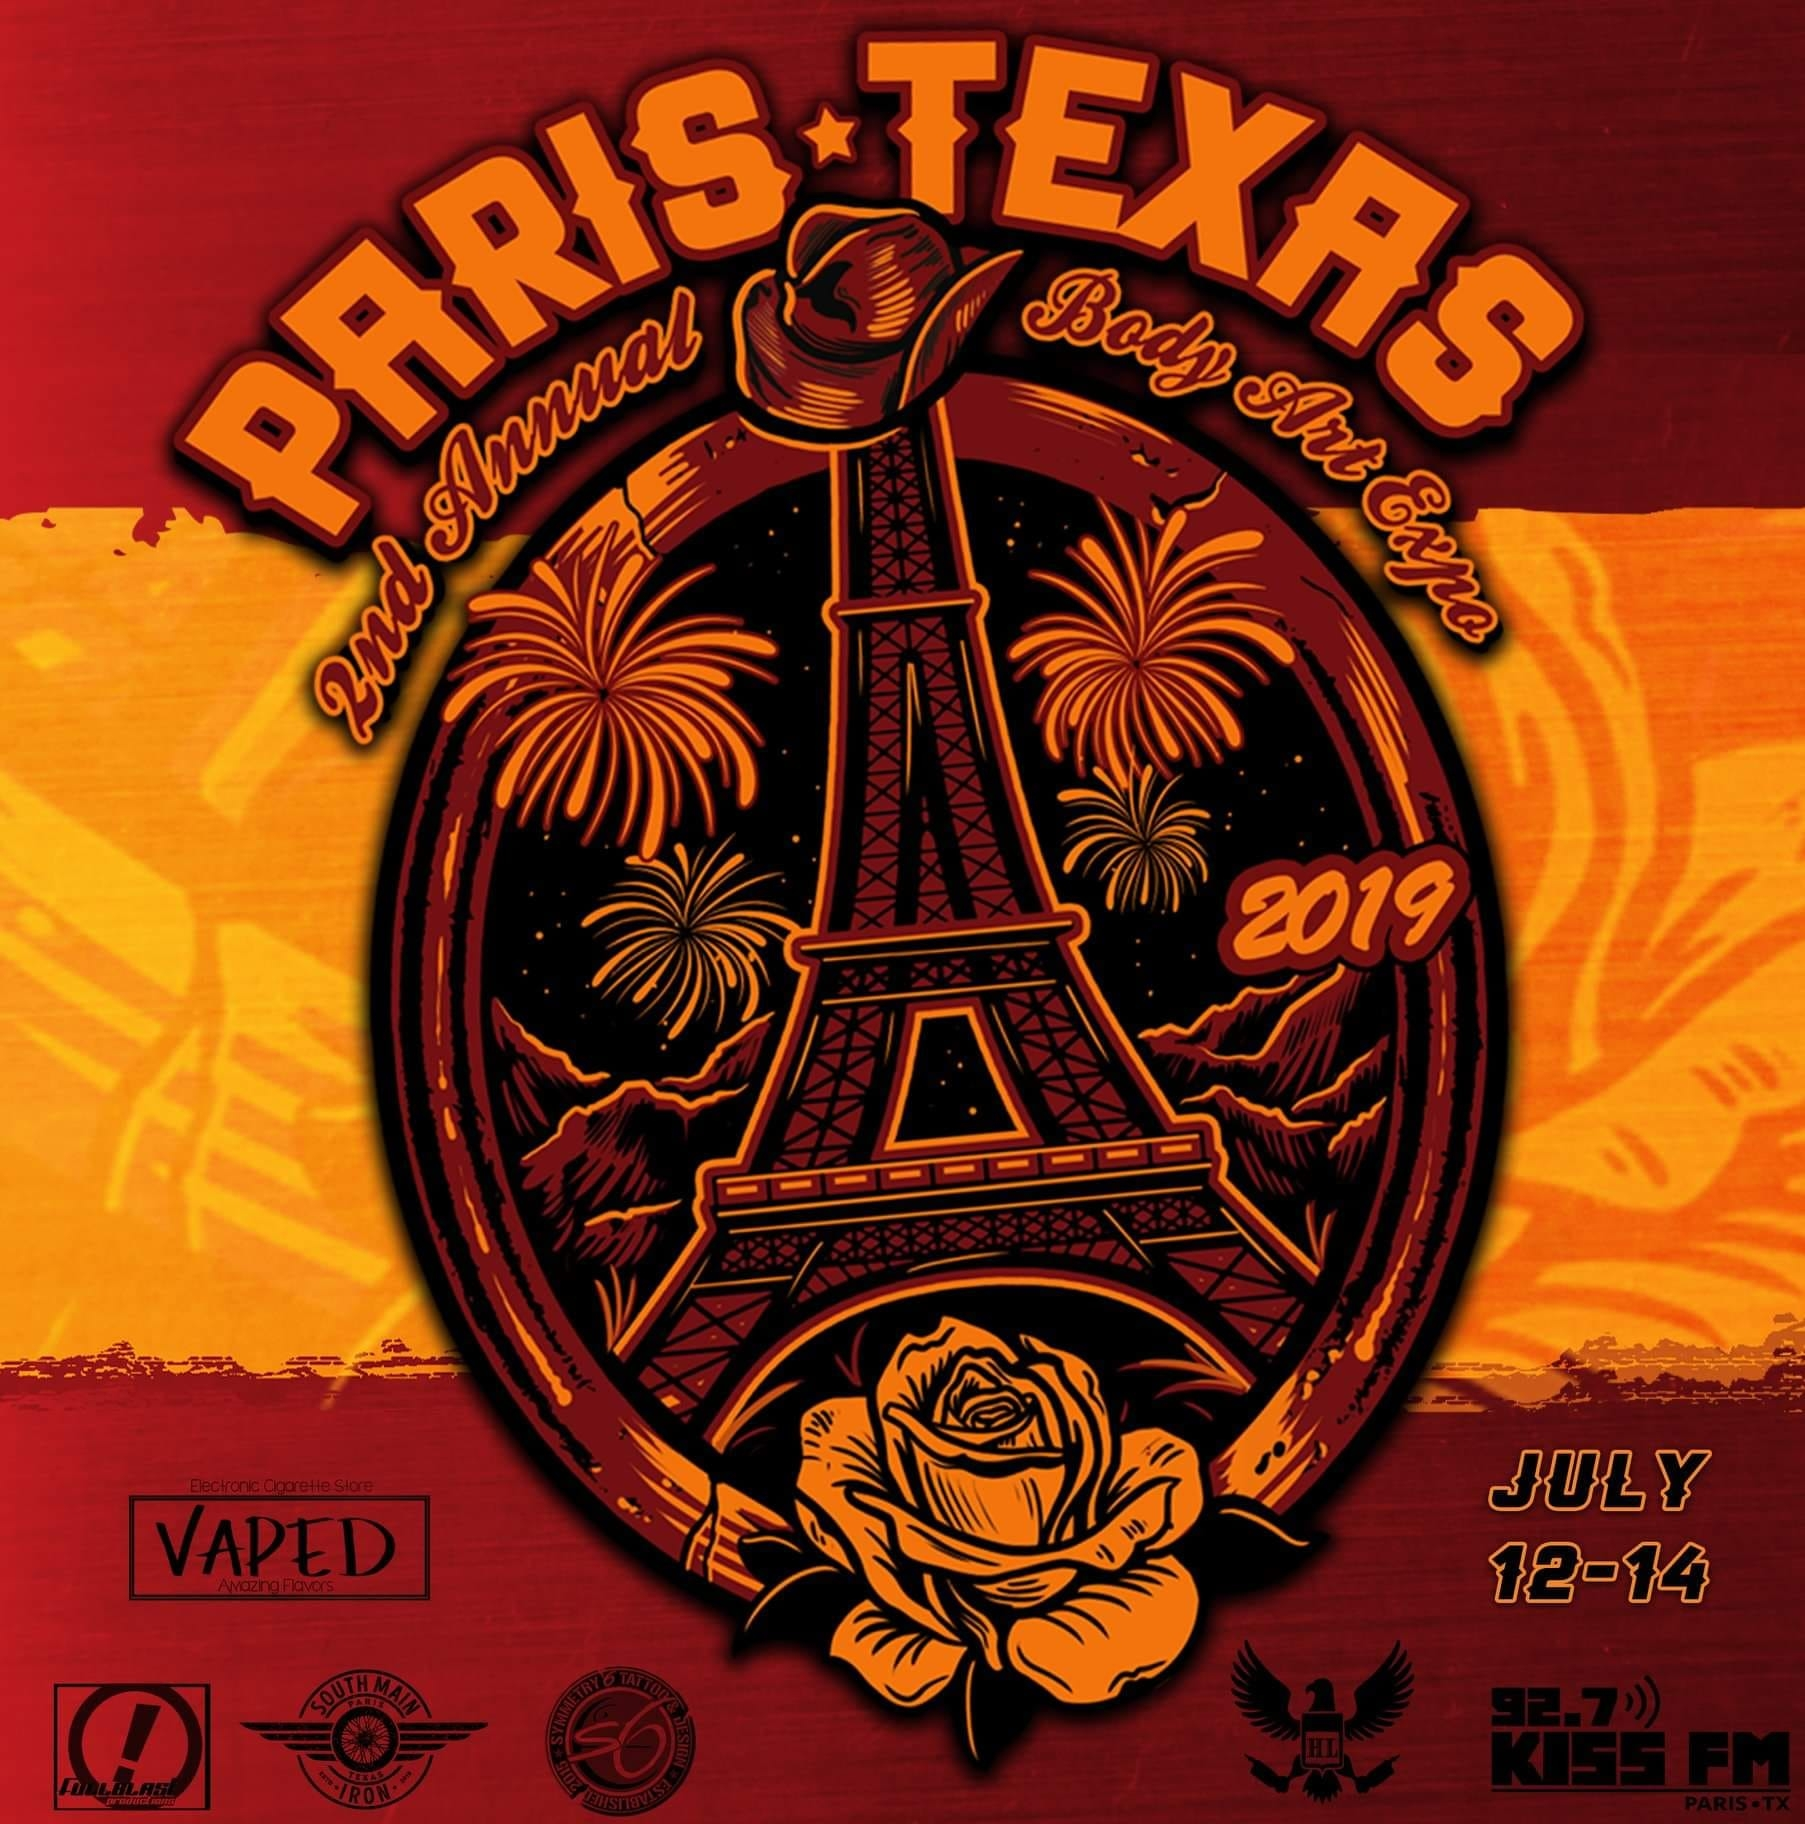 2nd Annual Body Art Expo - July 12-14Paris, TXClick the image for more information!